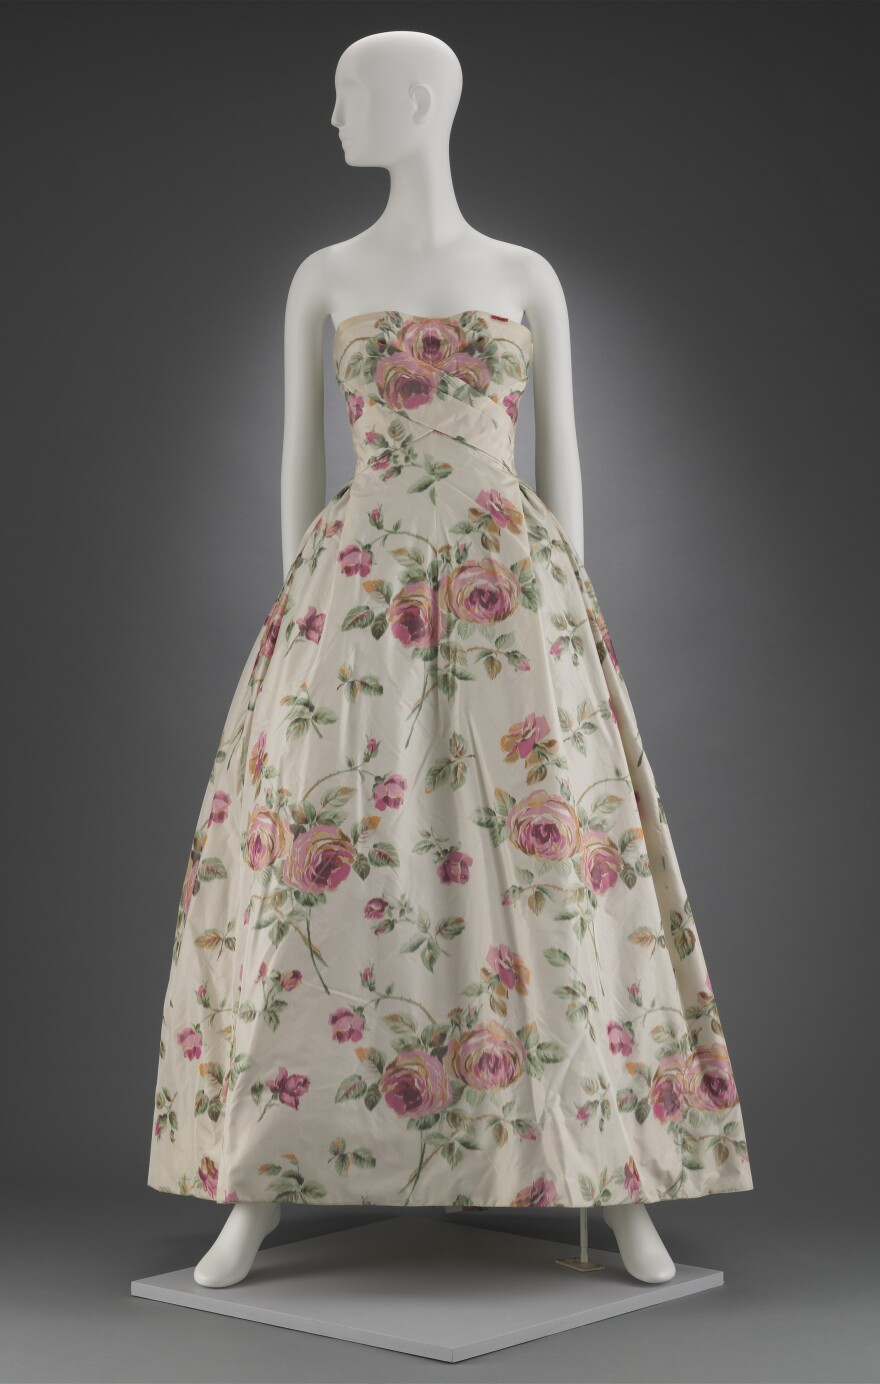 Big, pink flowers bloom on ivory silk in this 1956 dress by Christian Dior.